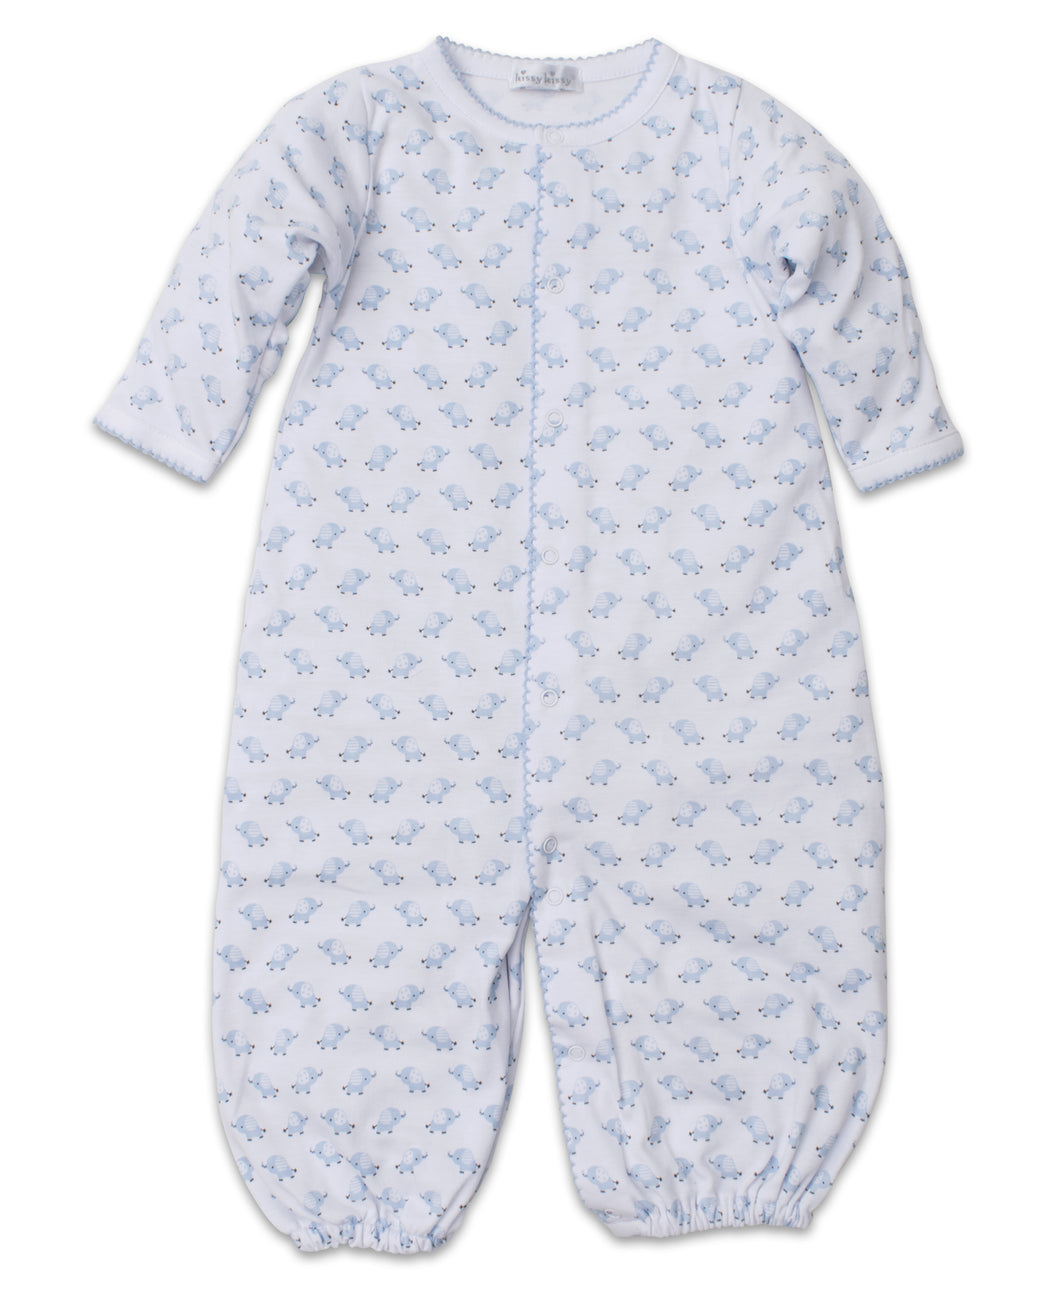 Baby Trunks Converter Gown - Light Blue